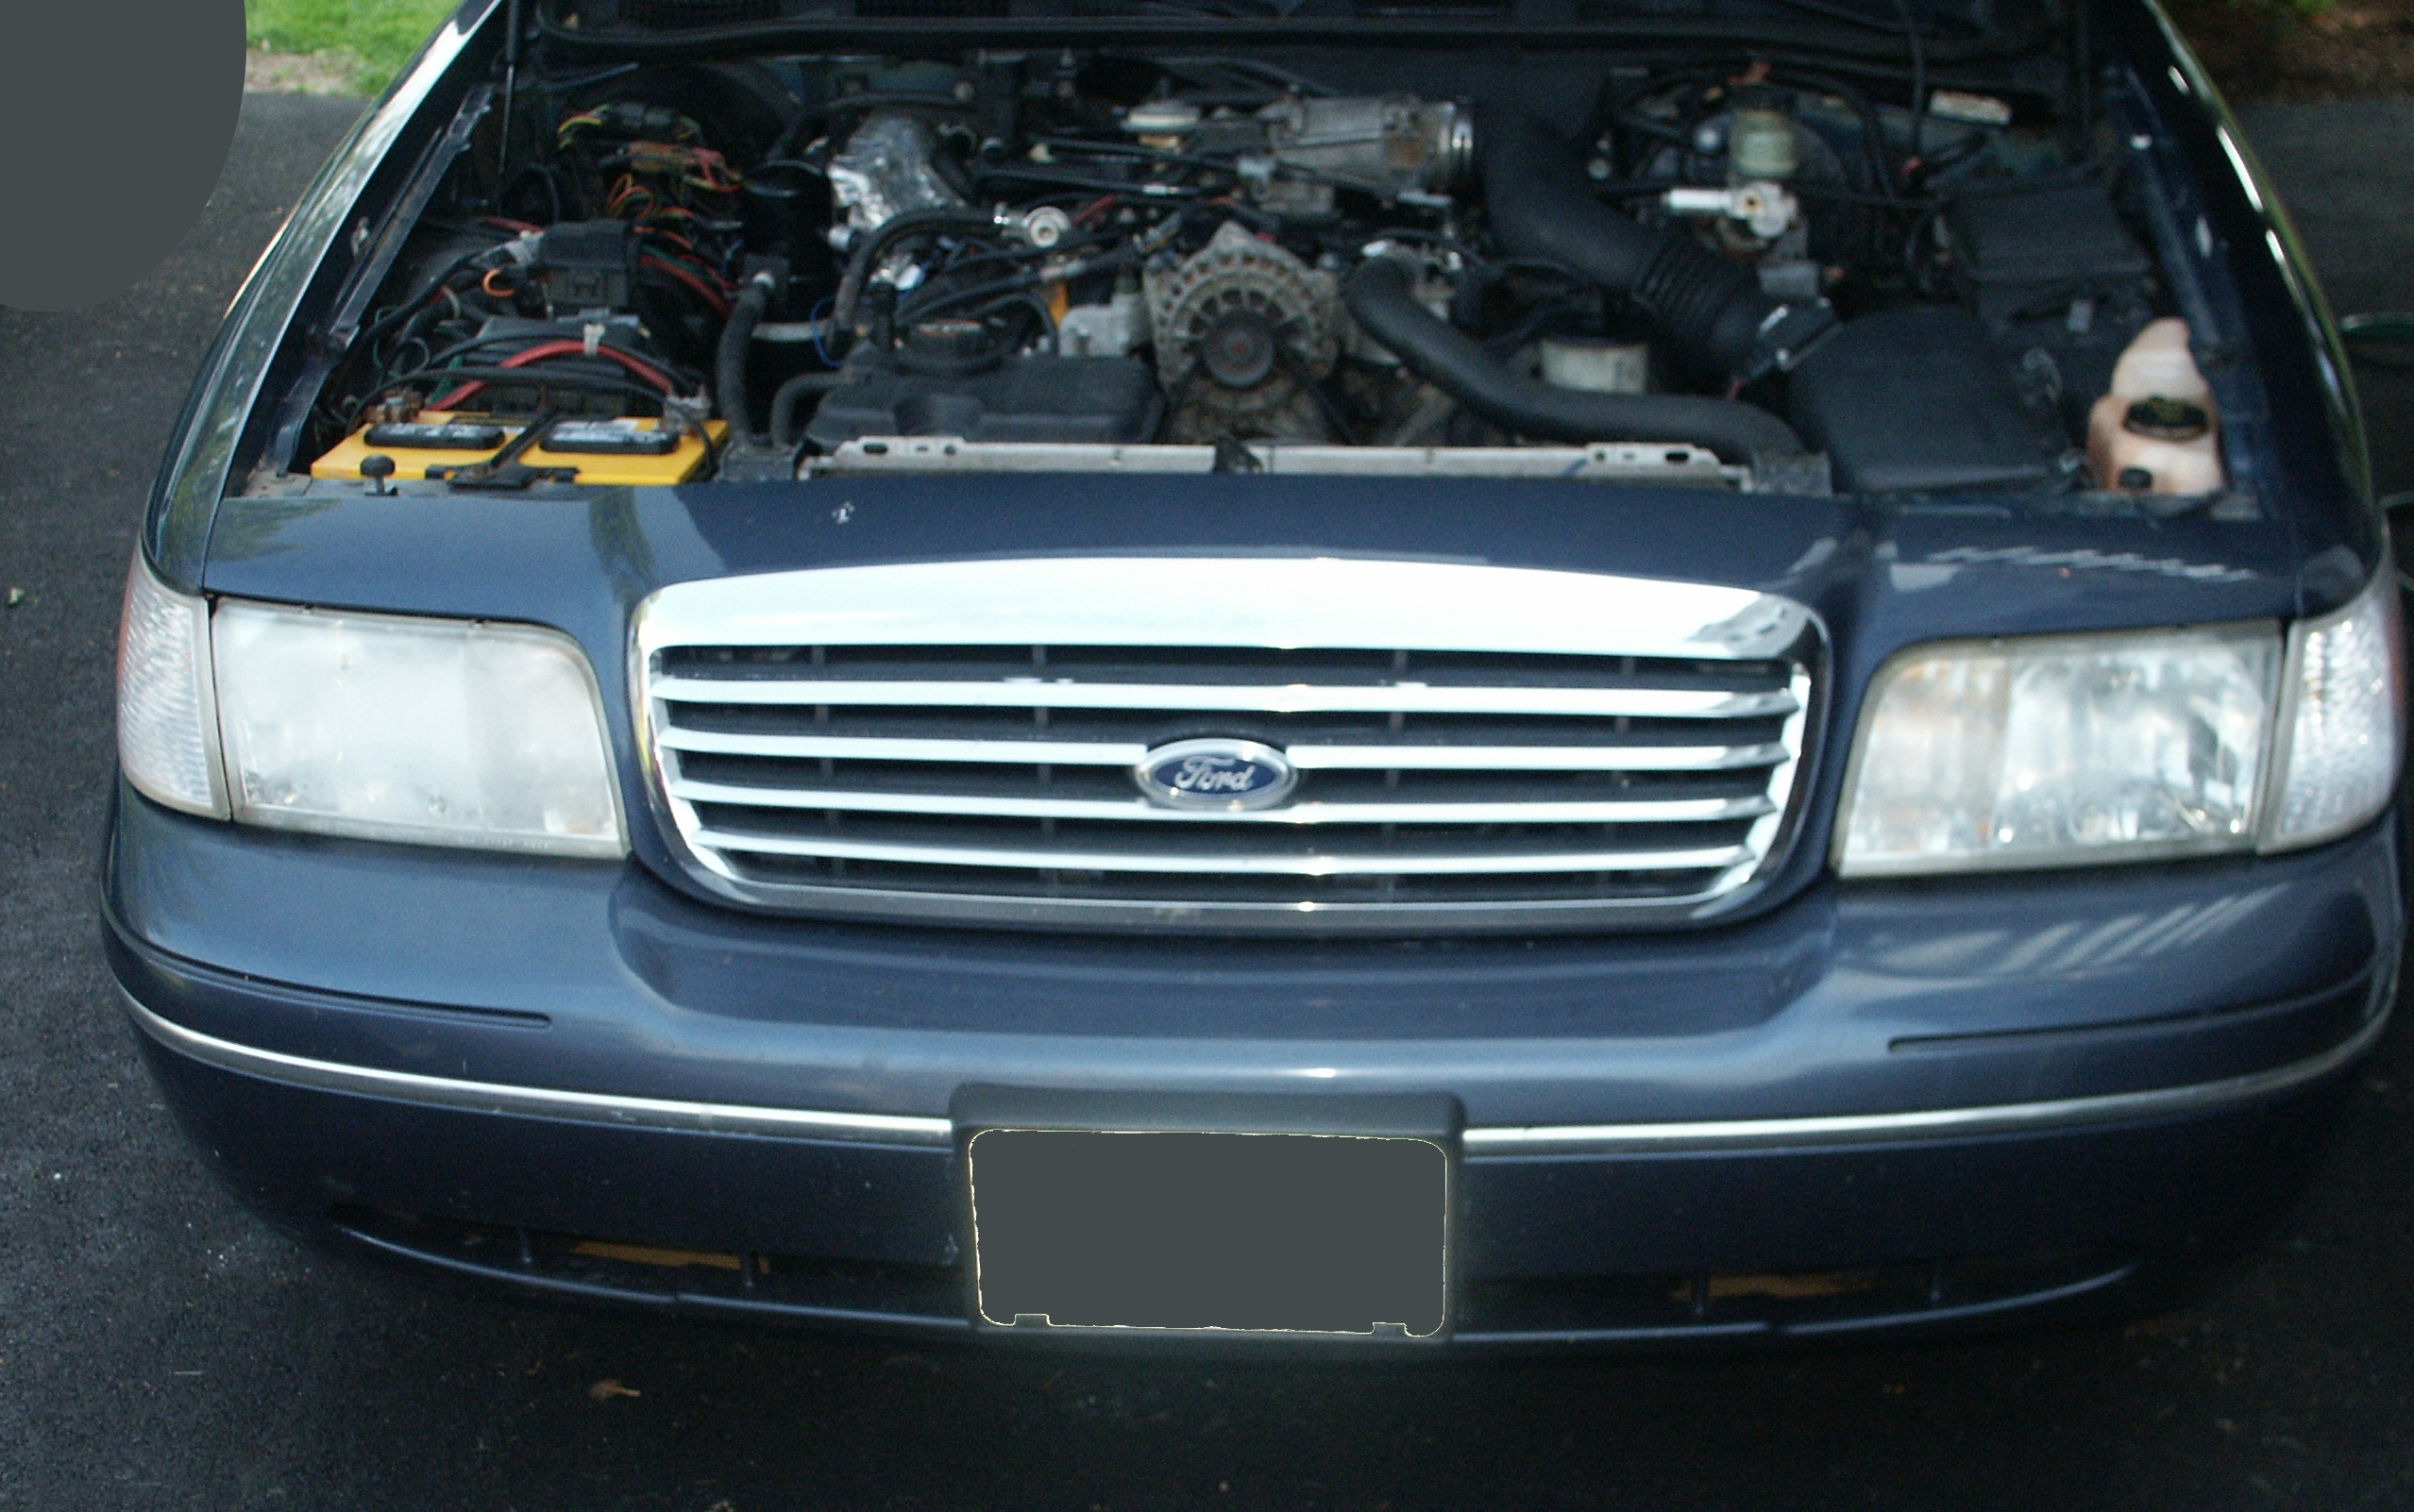 The First Part Of This Repair Was To Acquire A New Parts These Are Genuine Oem Ford Headlights For Production 2004 Crown Victoria